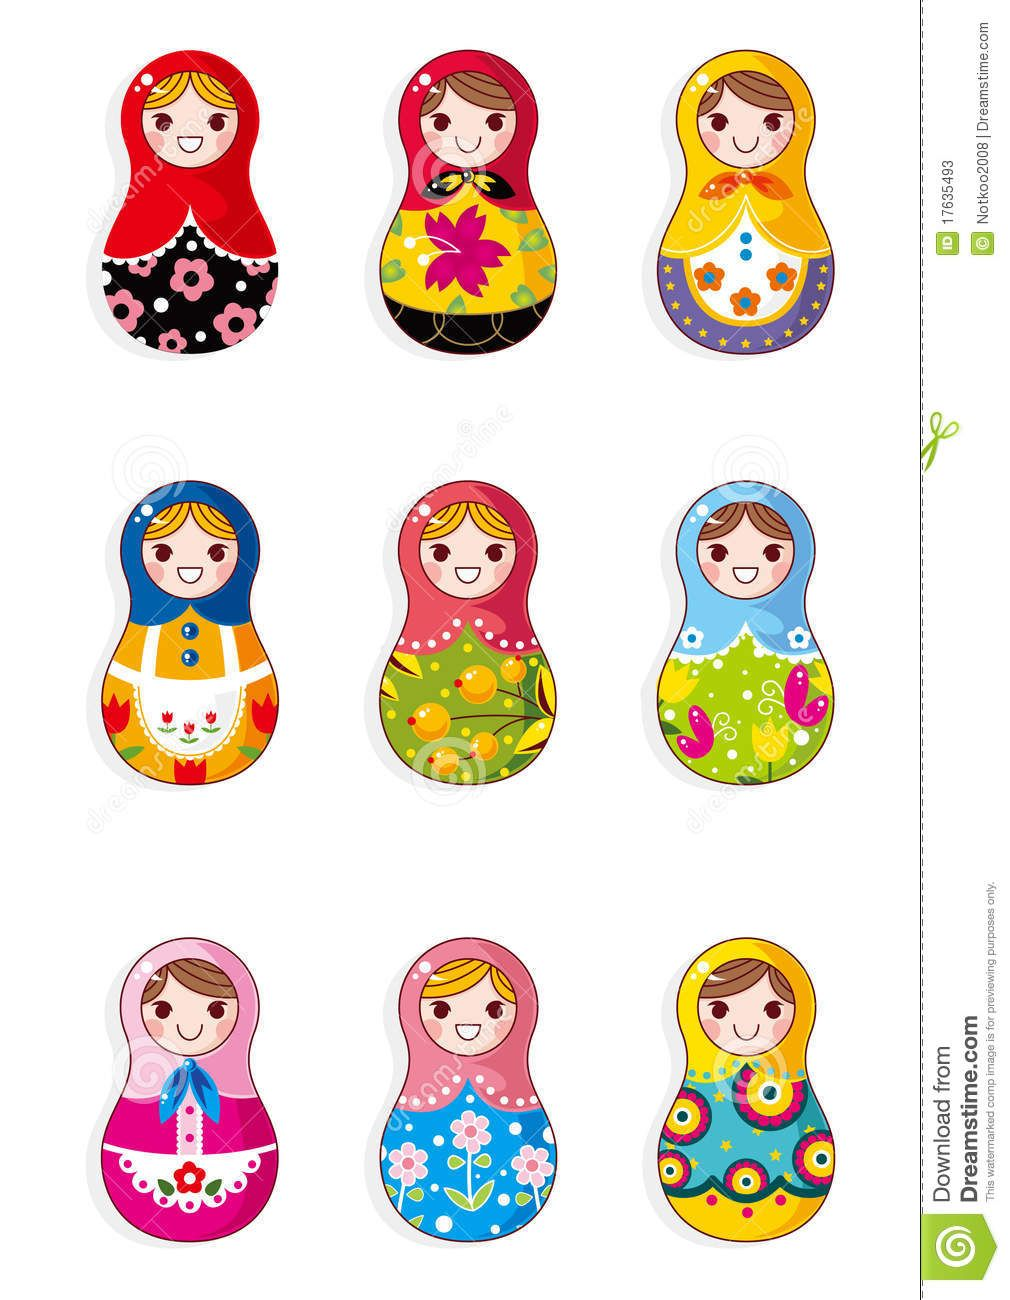 drawings of russian dolls images illustration inspirtation